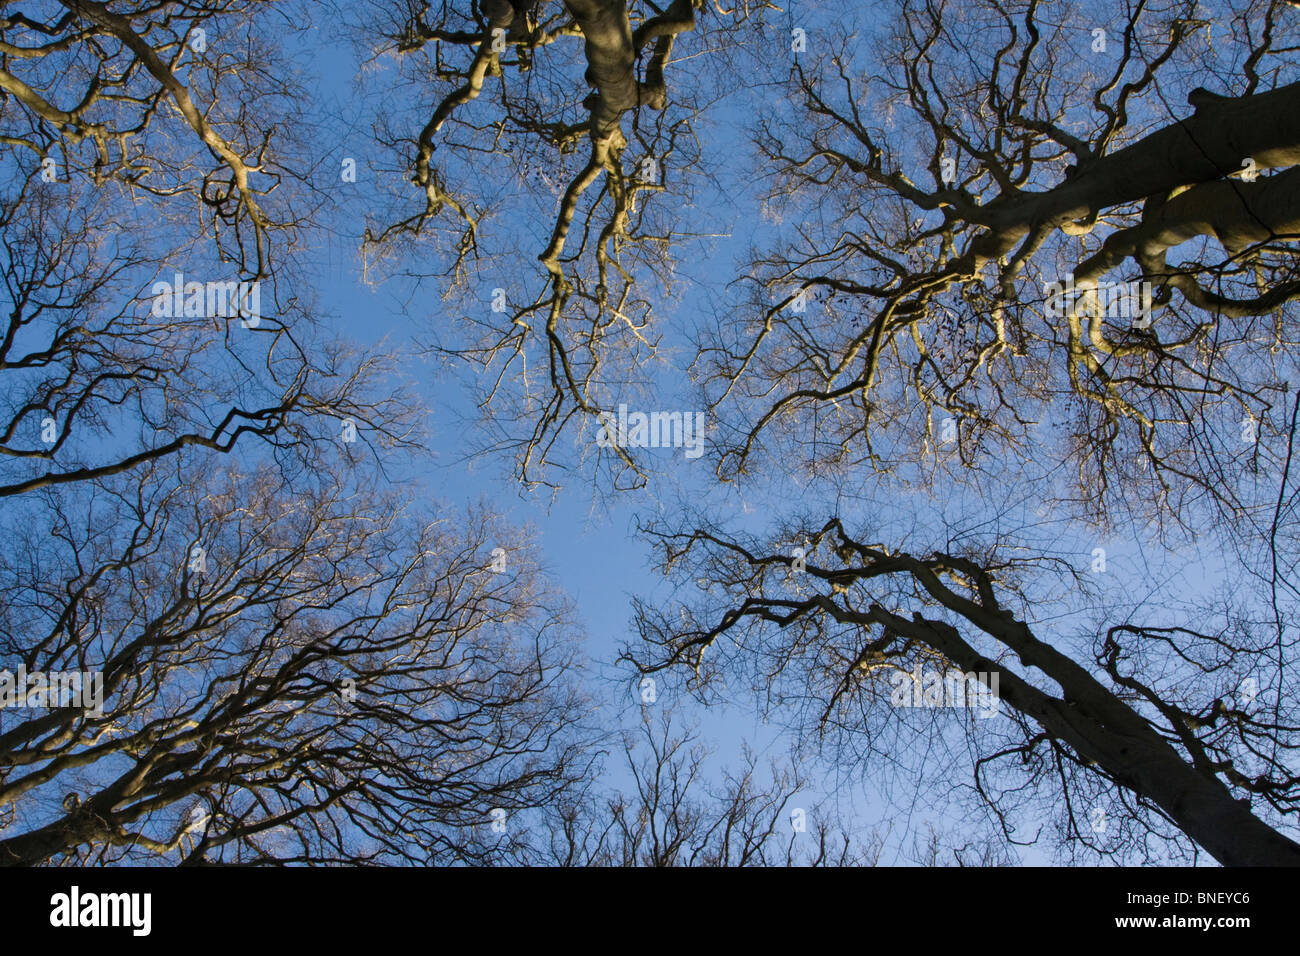 Birch Trees in Winter viewed upwards to the Blue Sky, New Forest, Hampshire, UK - Stock Image